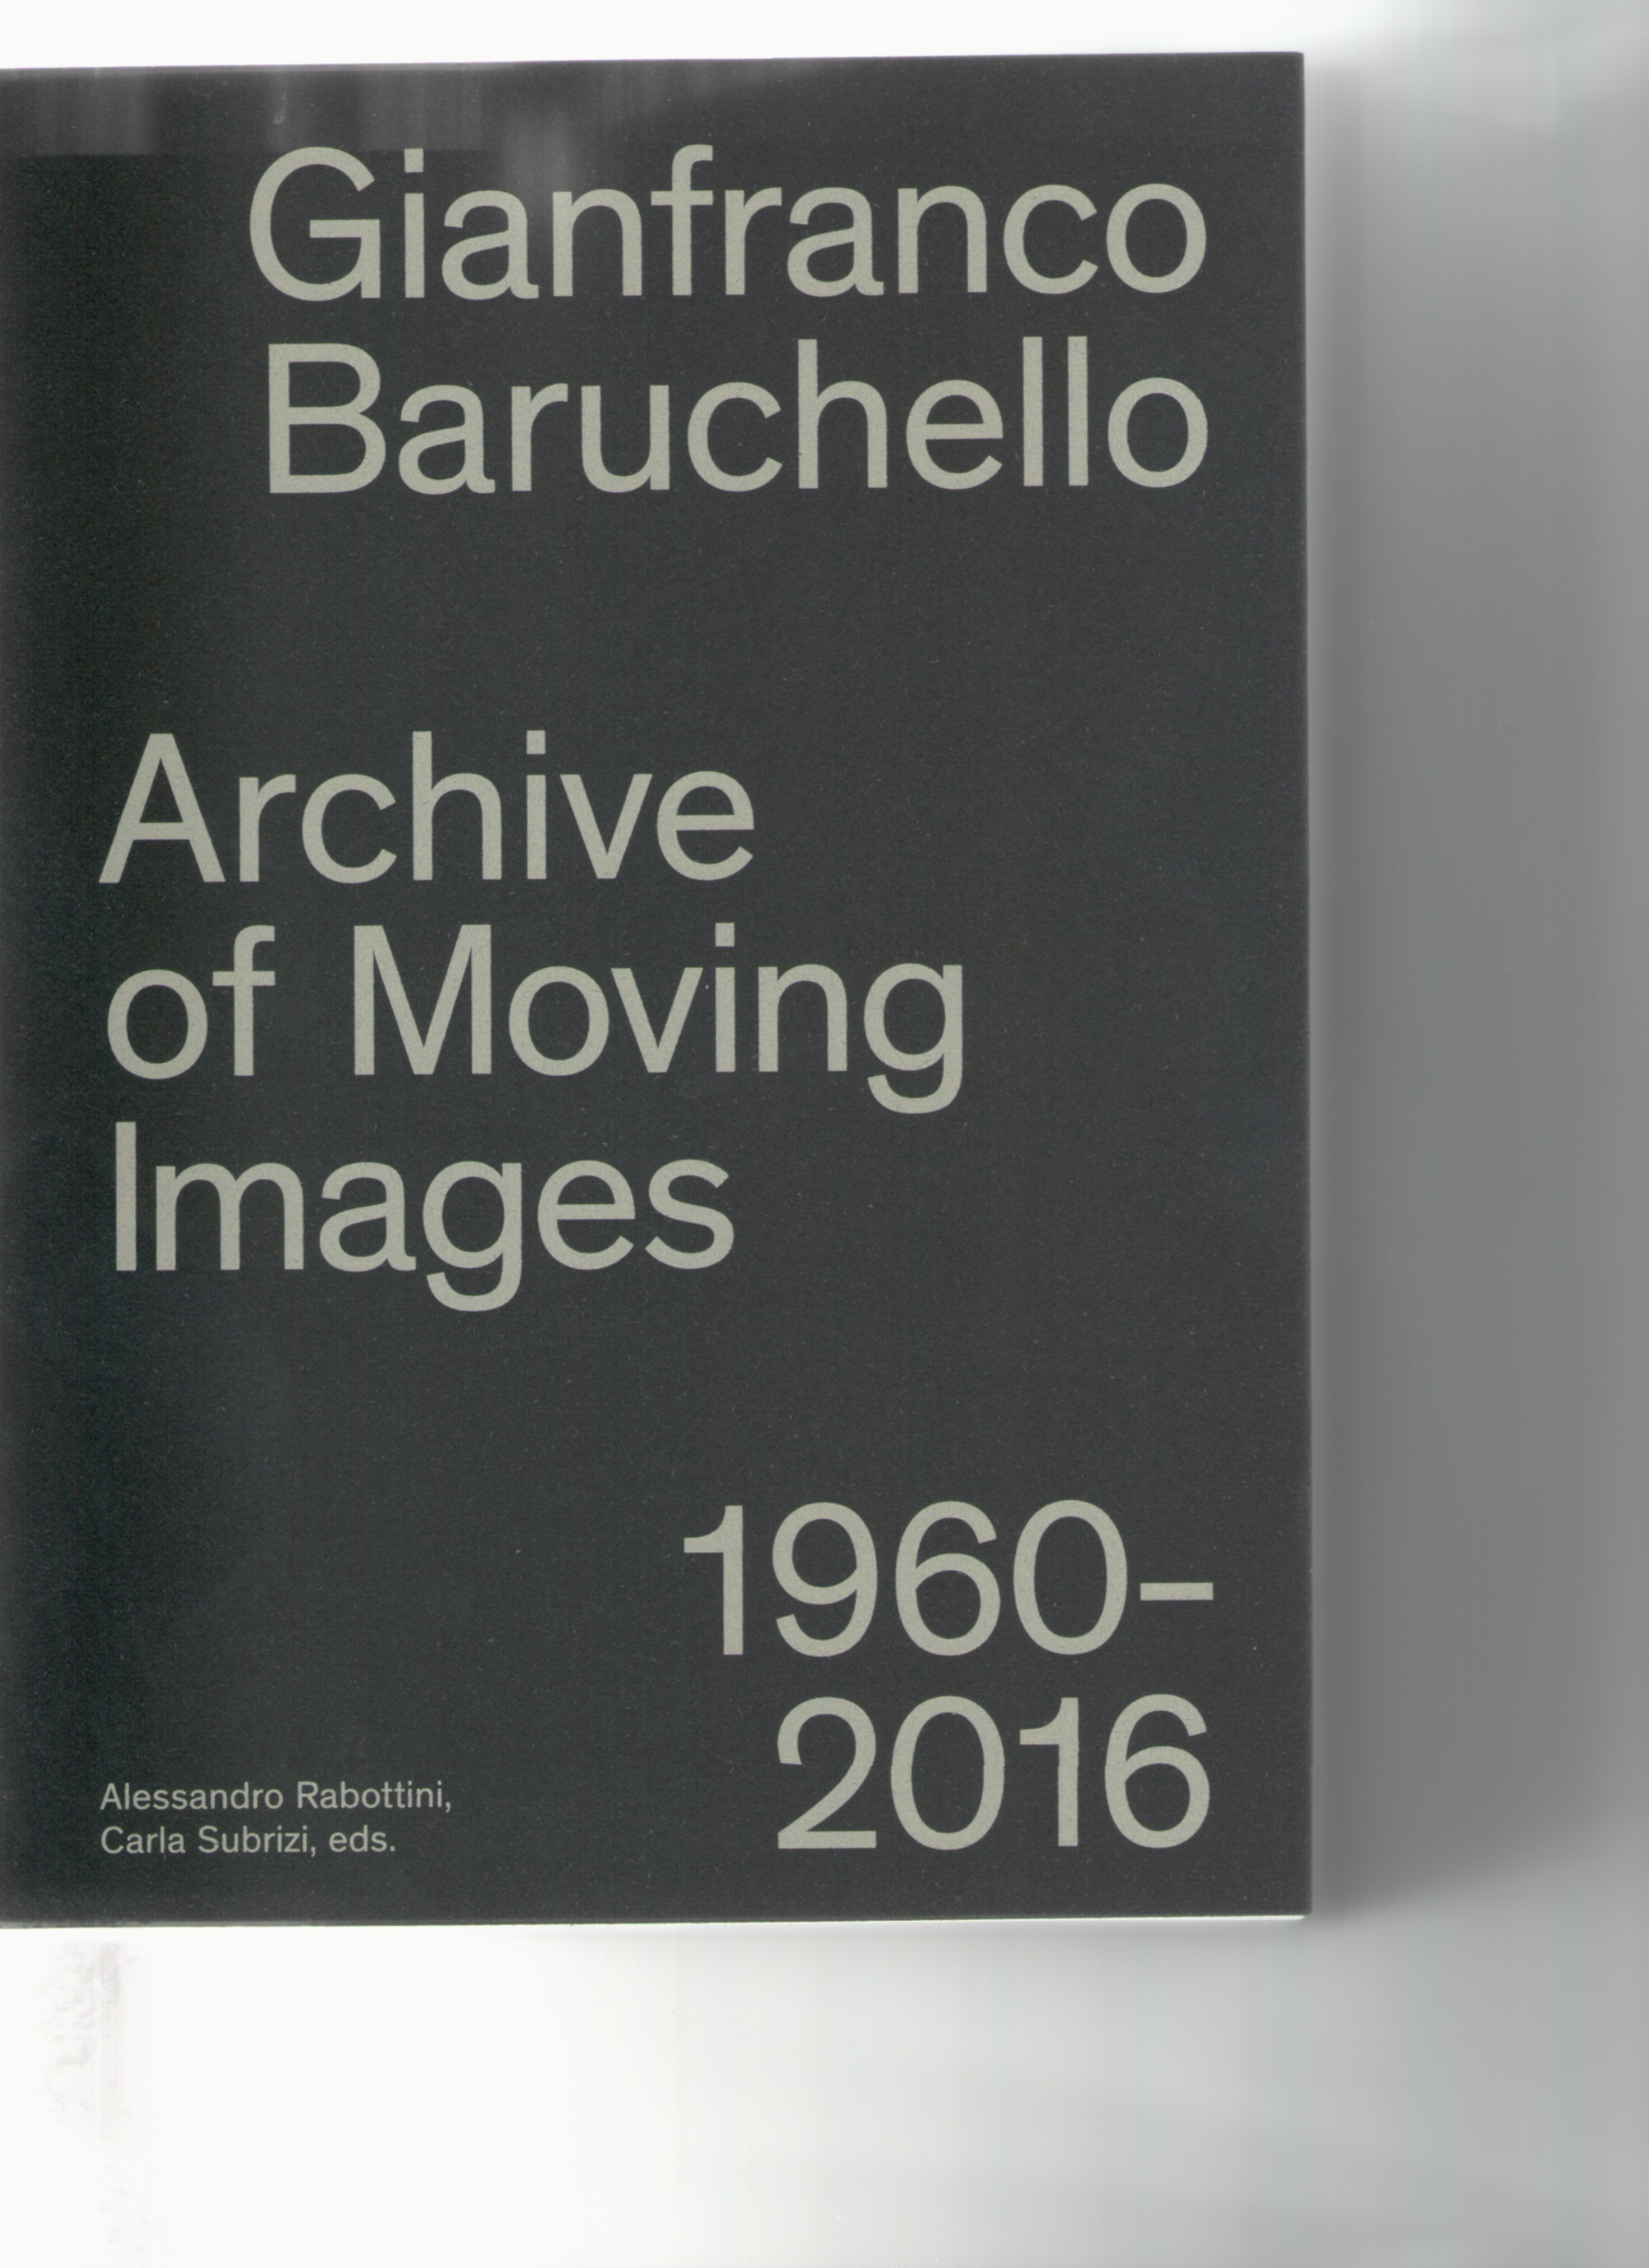 BARUCHELLO, Gianfranco; RABOTTINI, Alessandro (ed.); SUBRIZI, Carla (ed.) - Gianfranco Baruchello: Archive of Moving Images 1960-2016